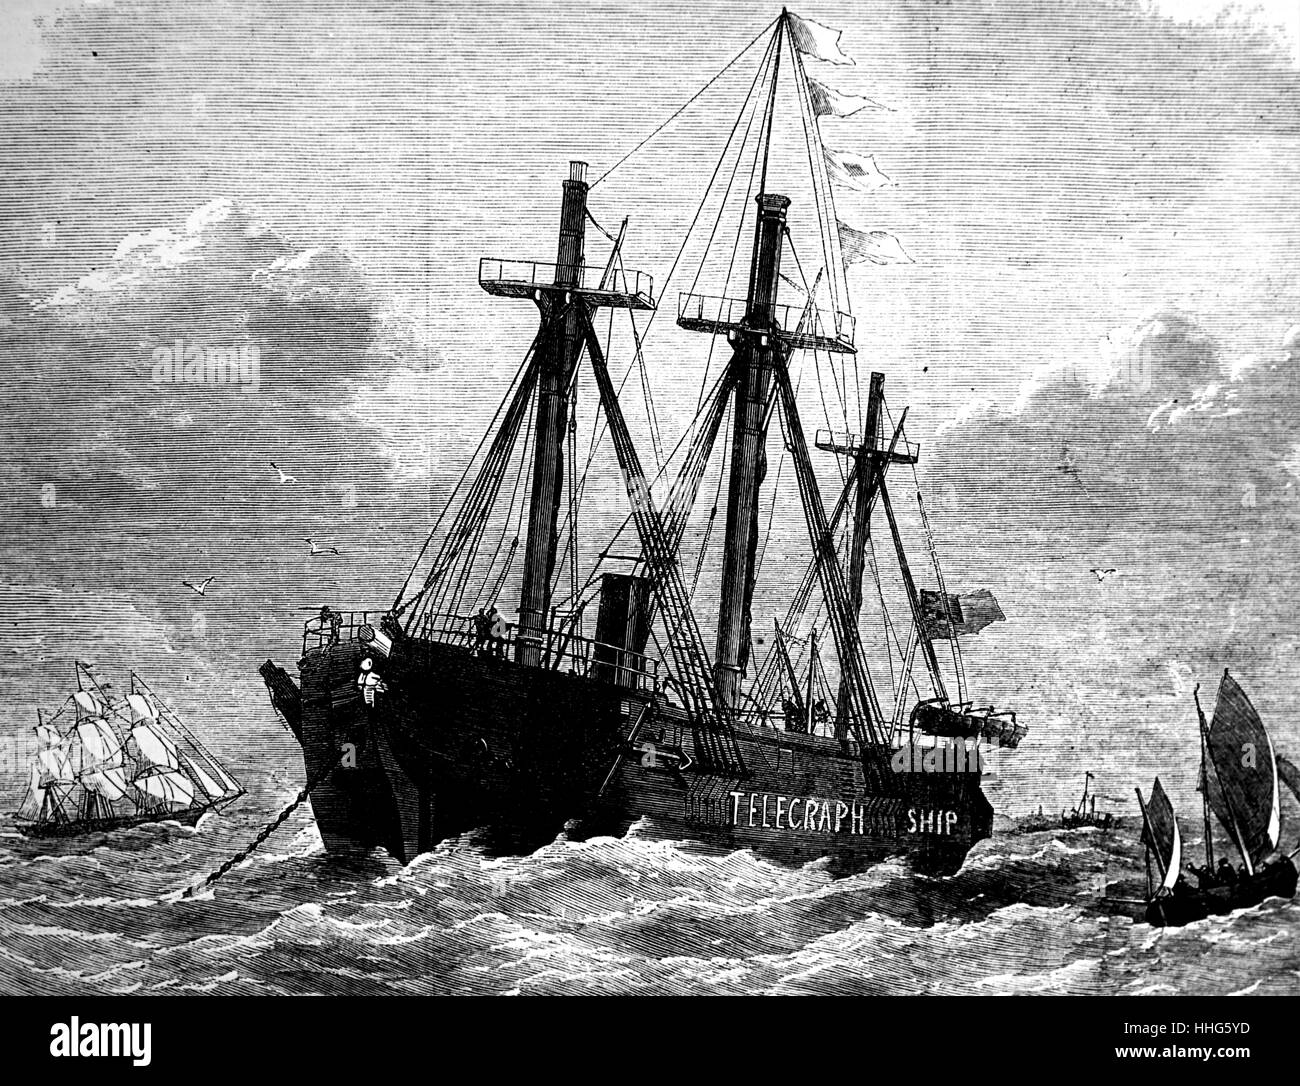 H.M.S. Brisk, granted to the International Mid-Channel Telegraph Company, anchored in the English Channel, 1870. - Stock Image